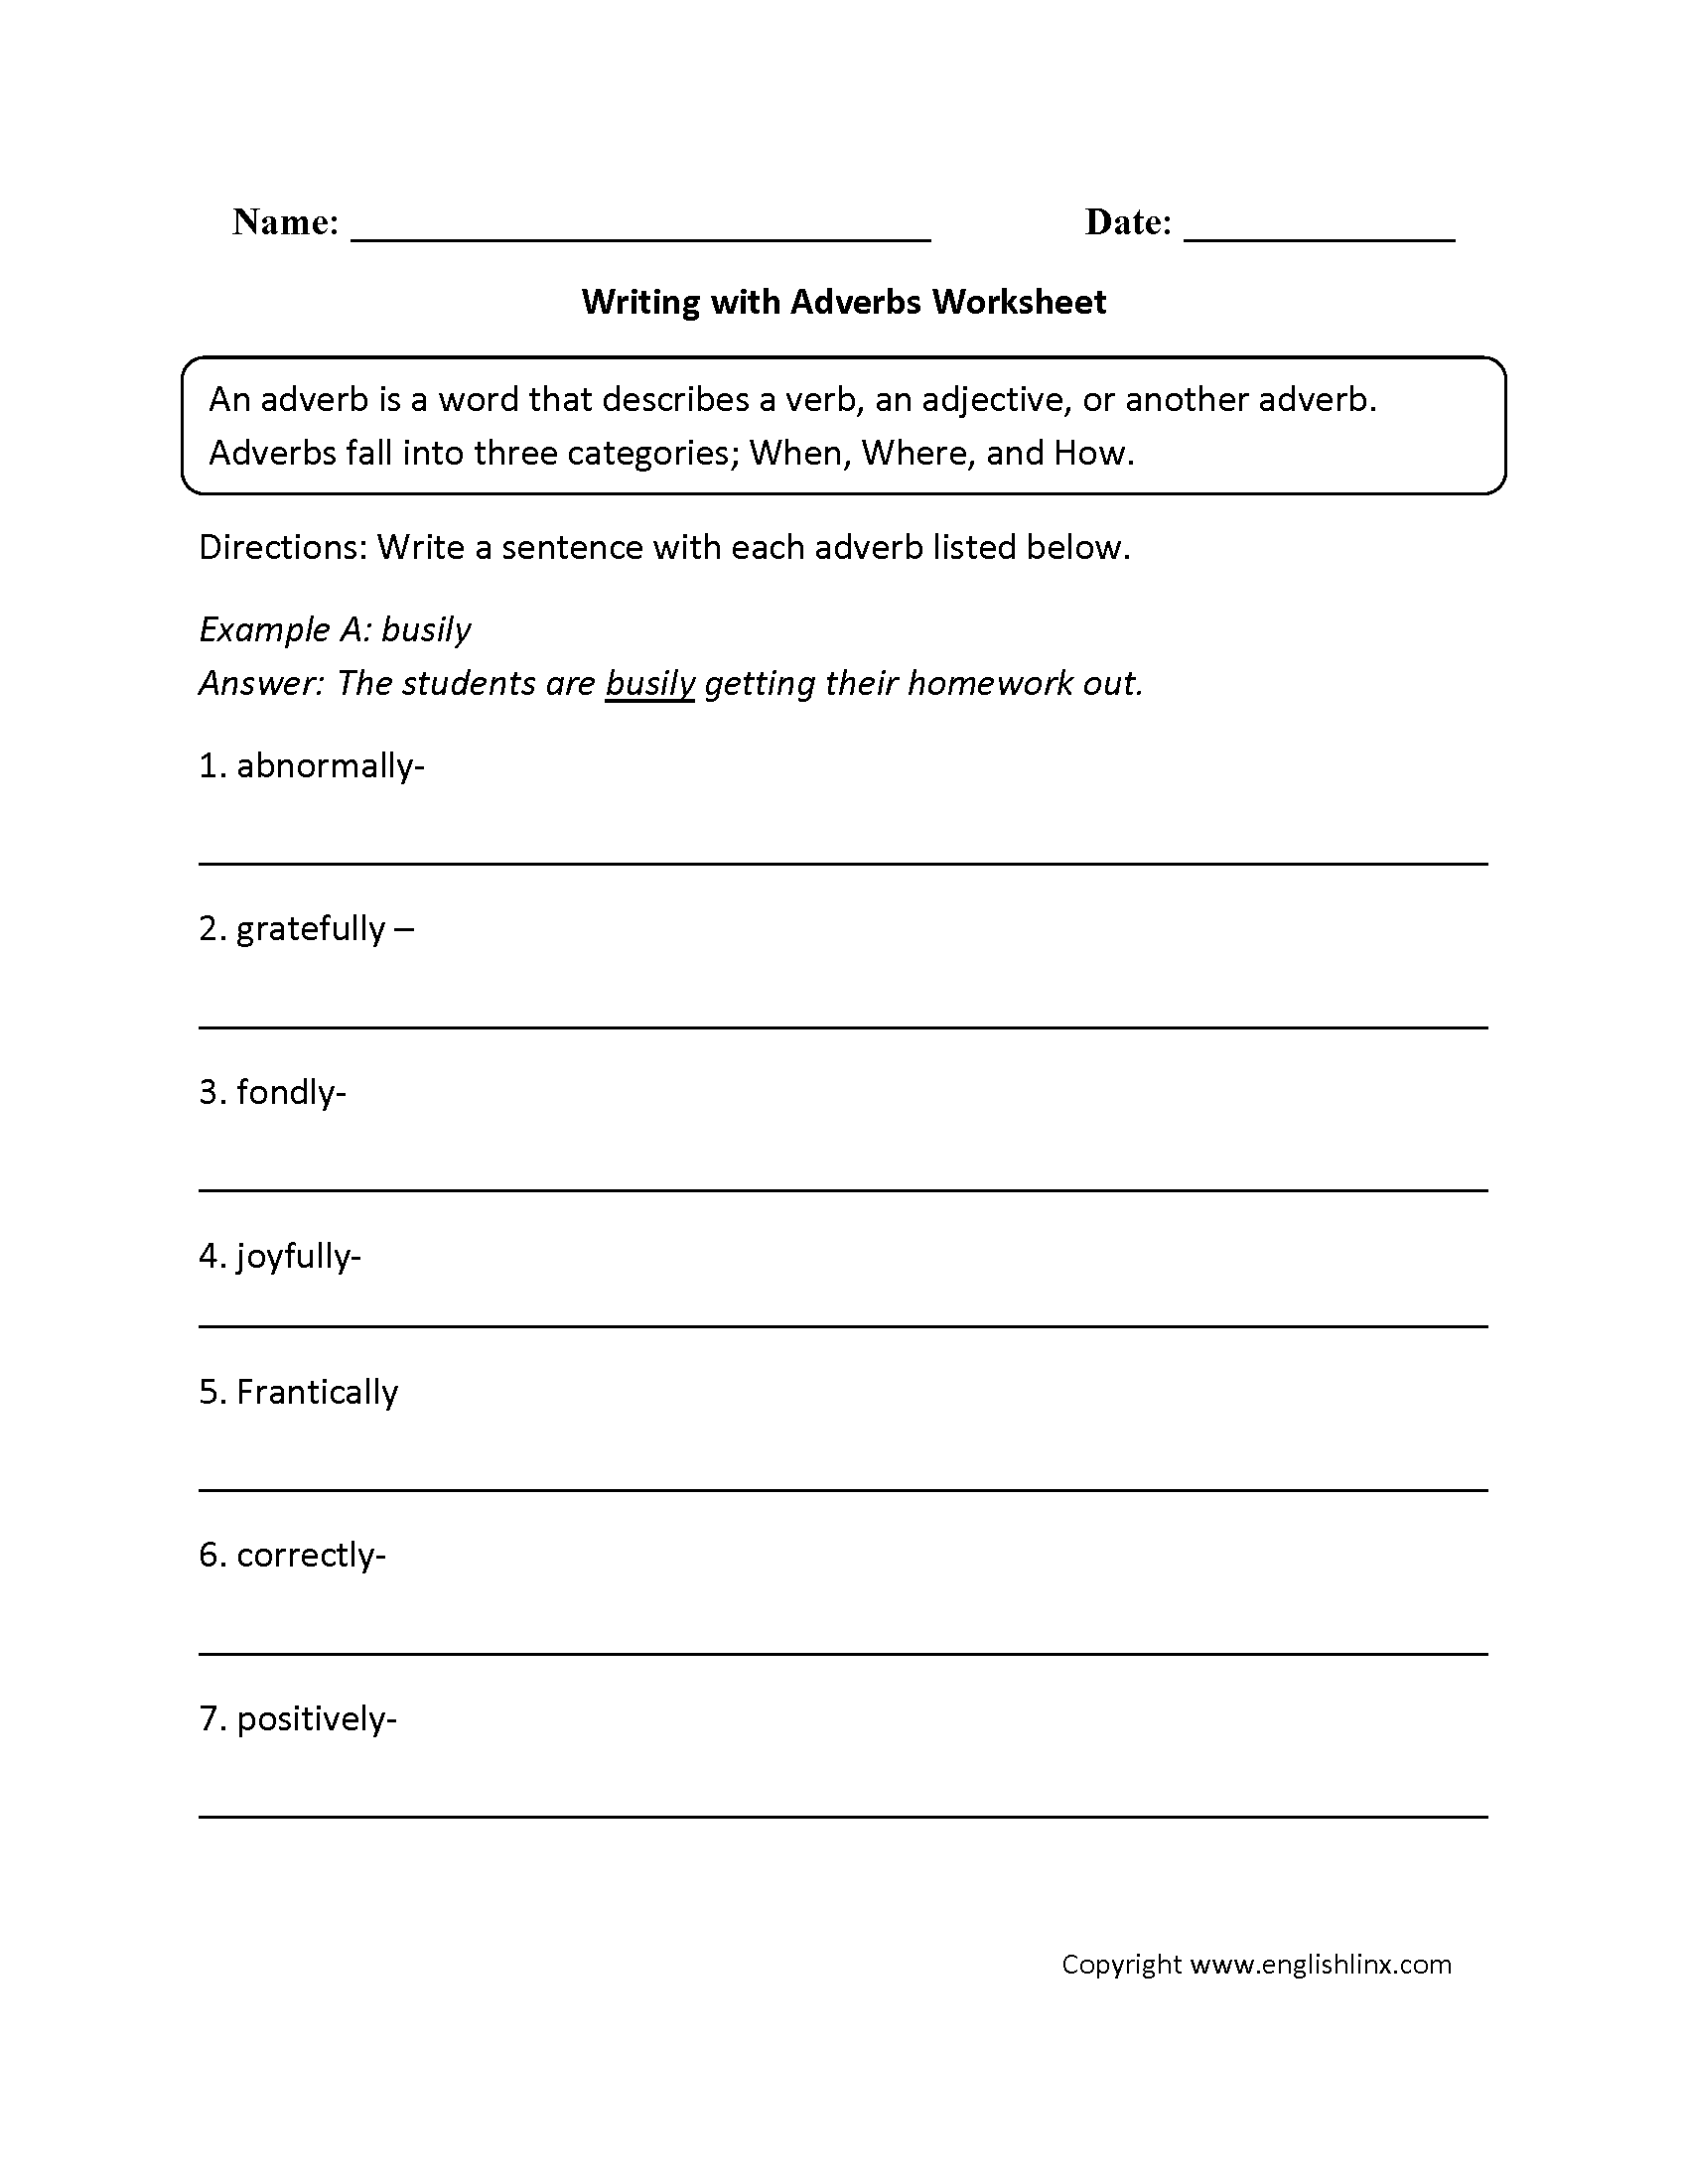 Worksheets Adverb Worksheet adverbs worksheets regular grades 6 8 worksheets